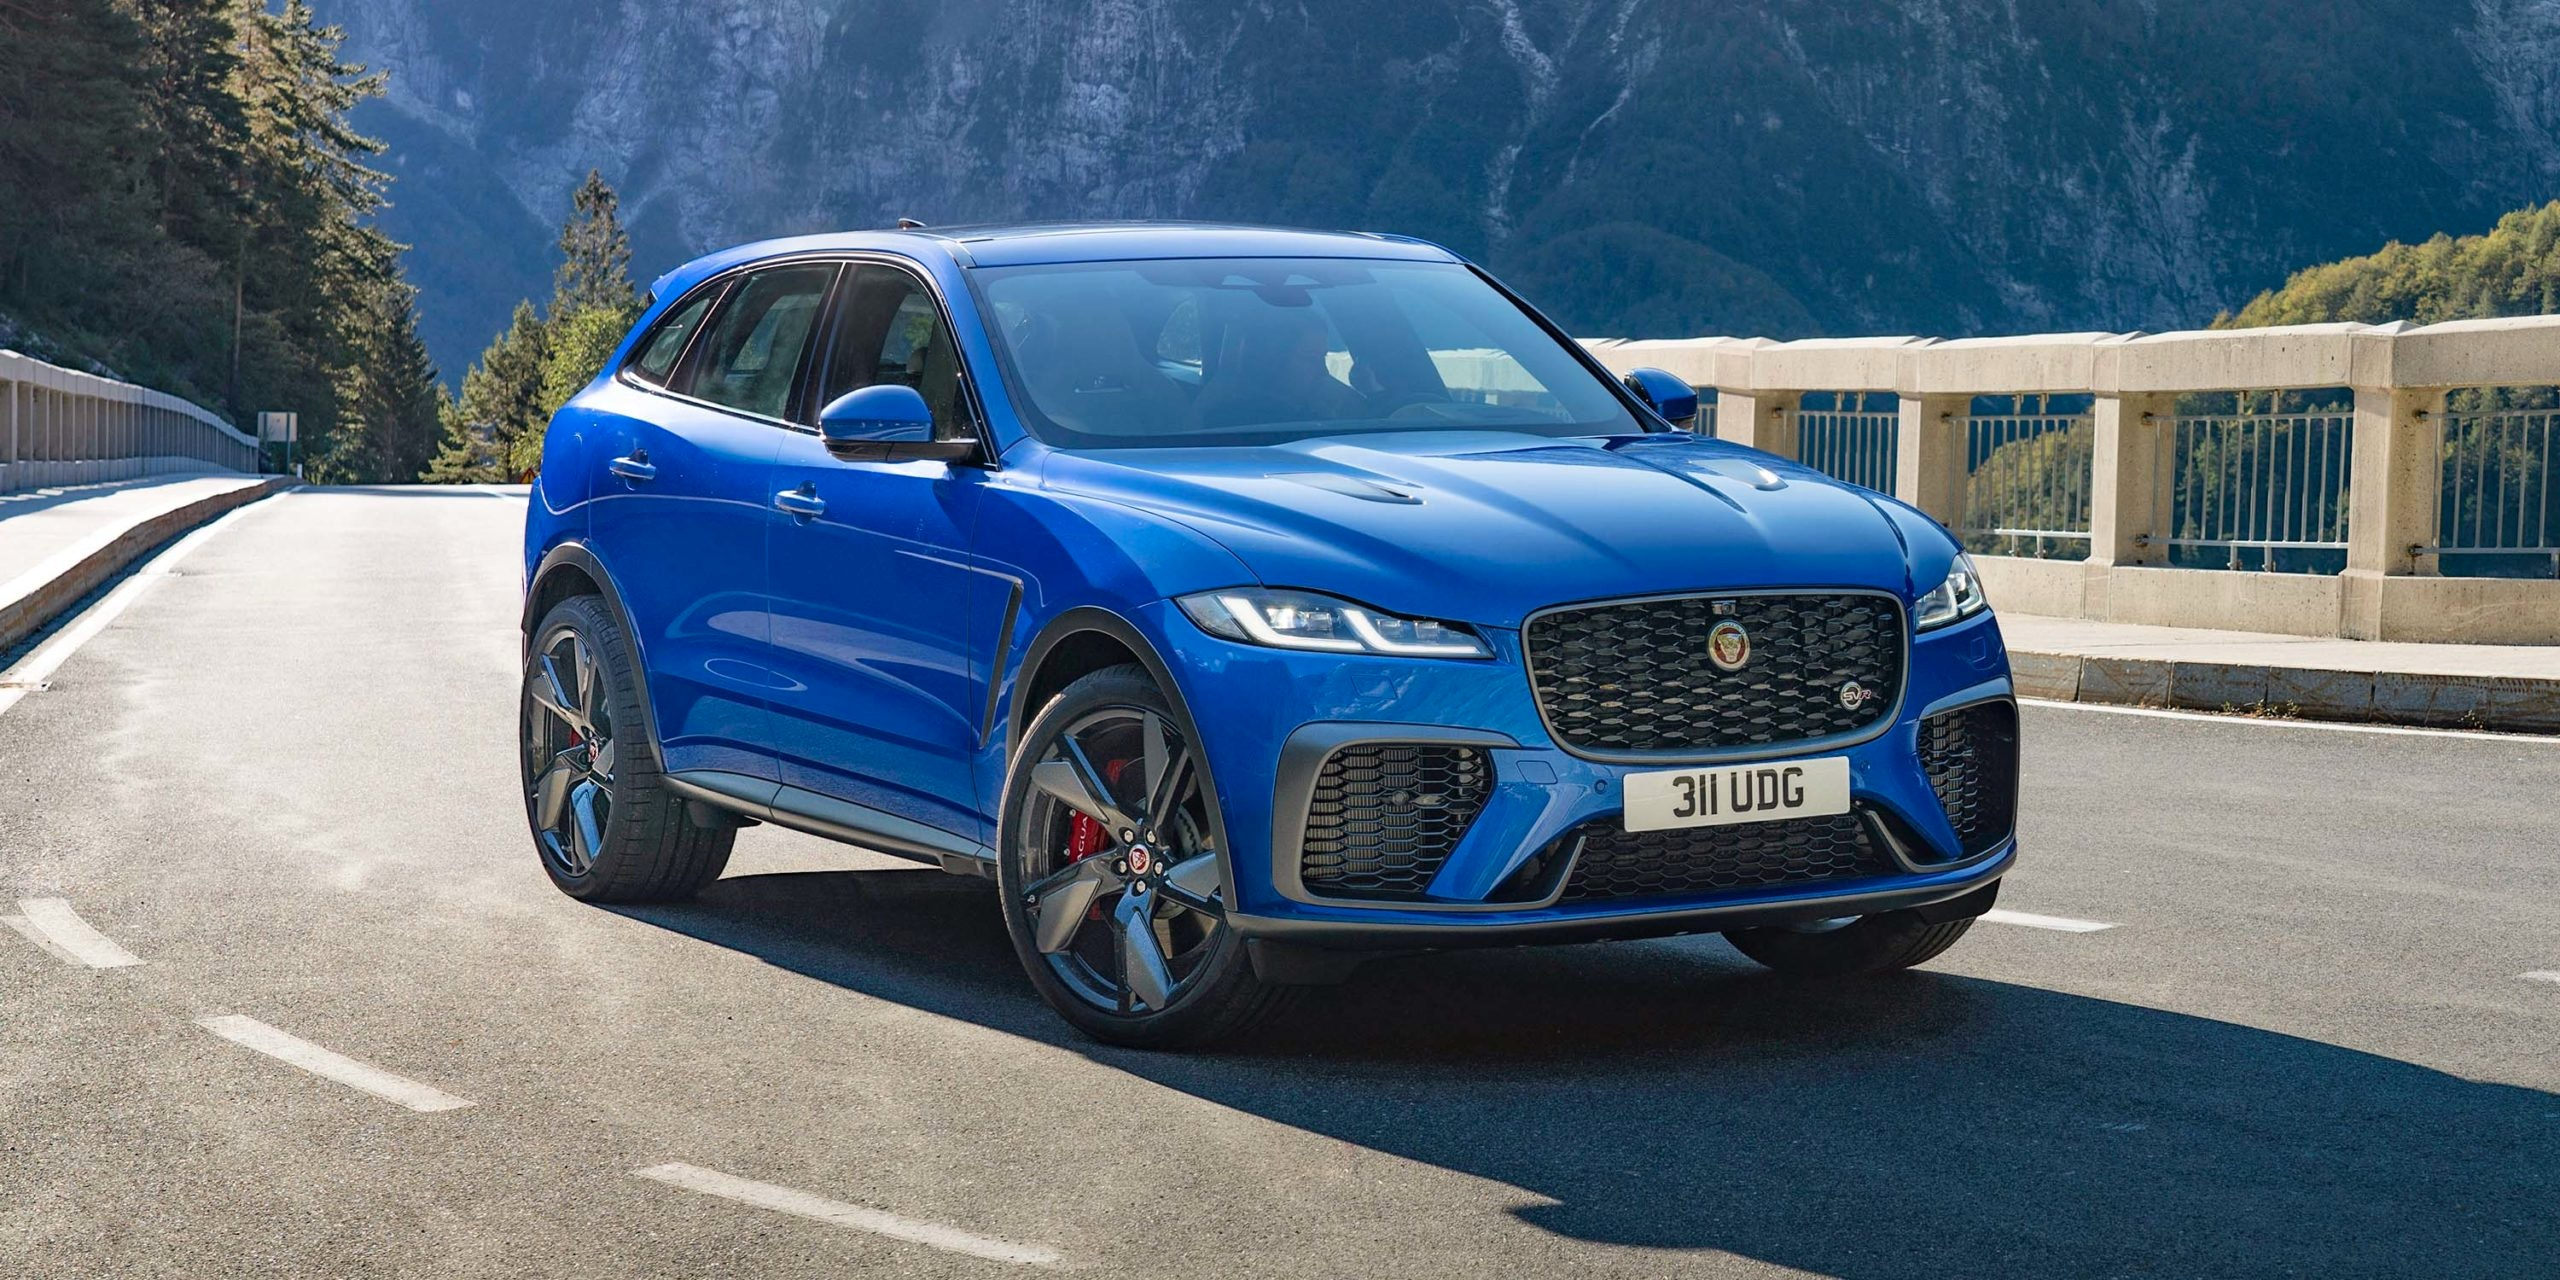 New Jaguar F Pace Svr Revealed Price Specs And Release Date Carwow